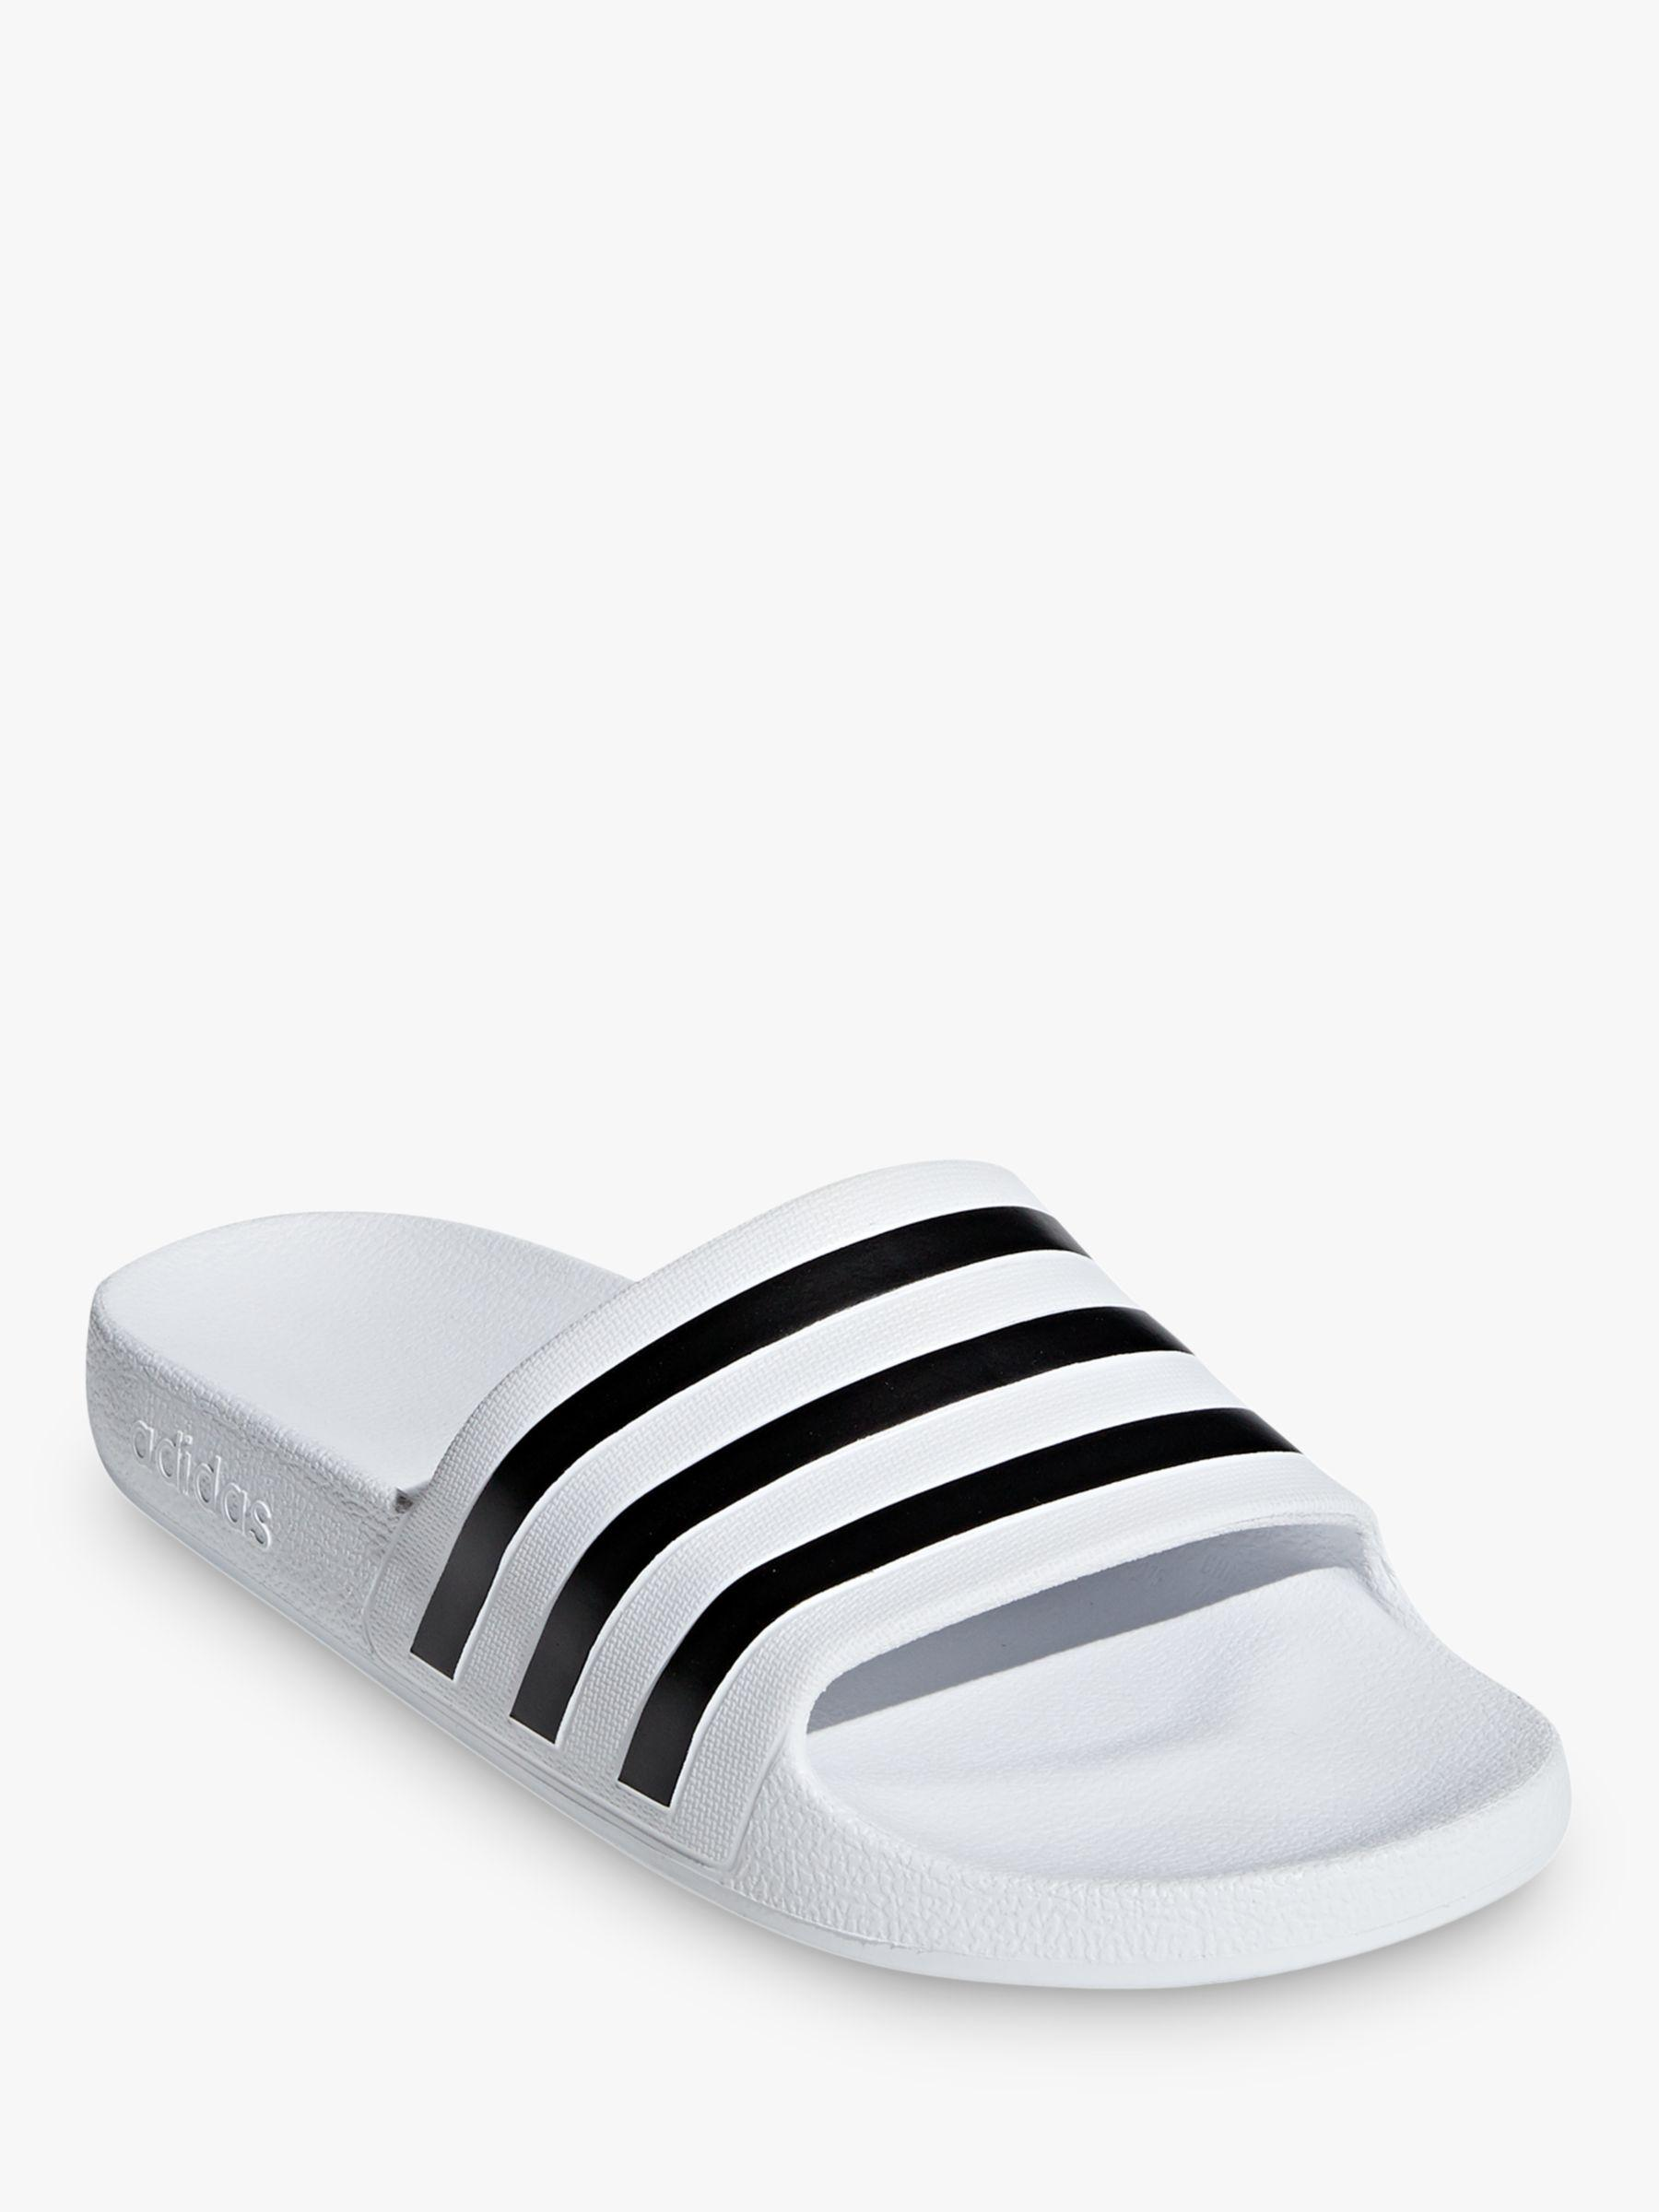 brand new 56e3e cd50a Adidas - Black Adilette Aqua Womens Slides Slippers - Lyst. View fullscreen